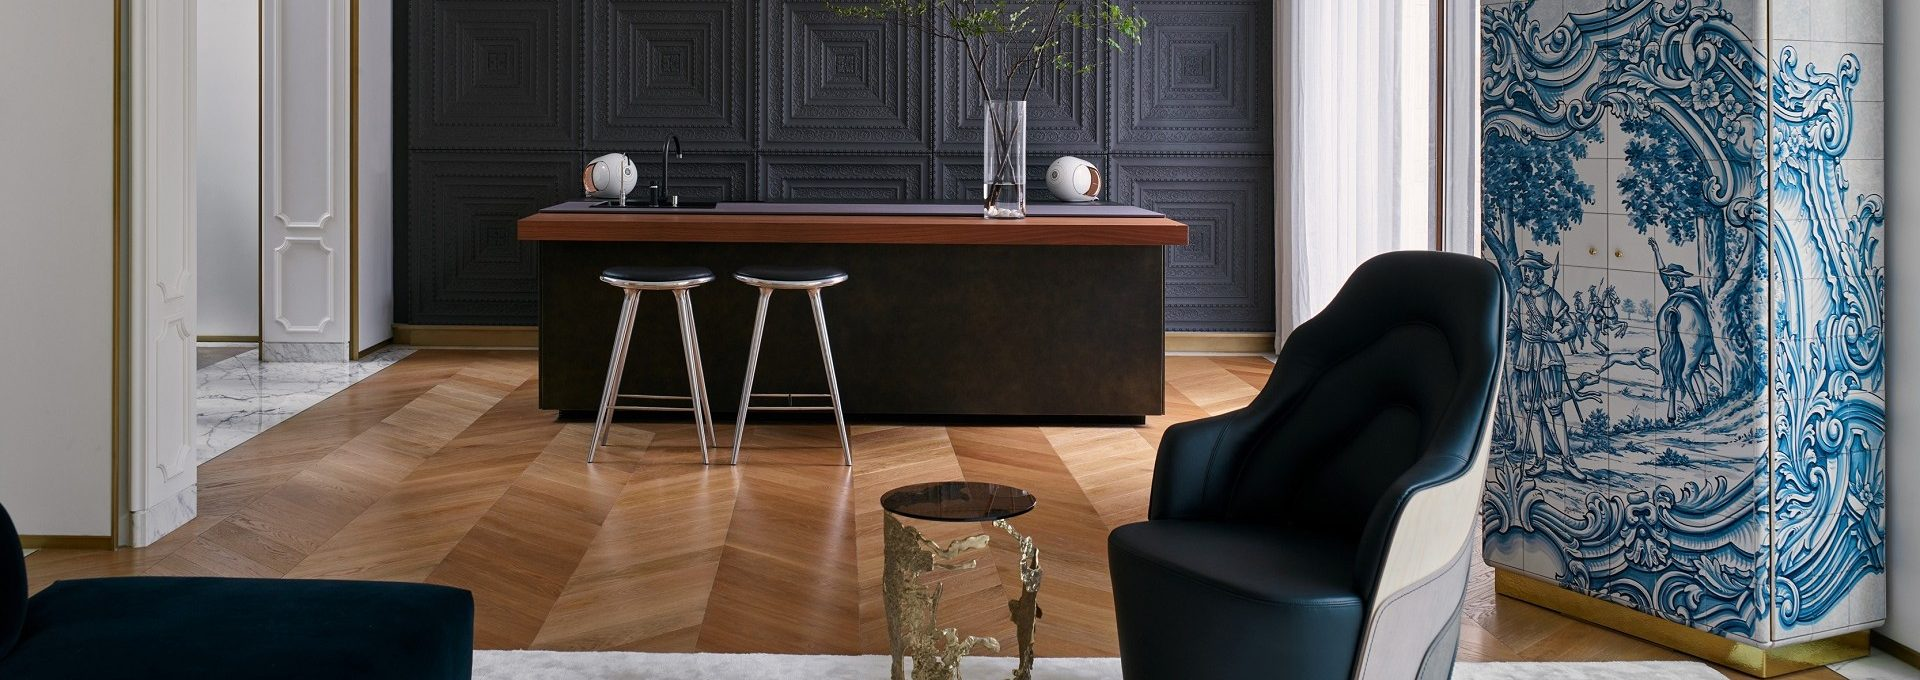 The Most Exclusive Furniture For Your Dream Design Home (14)